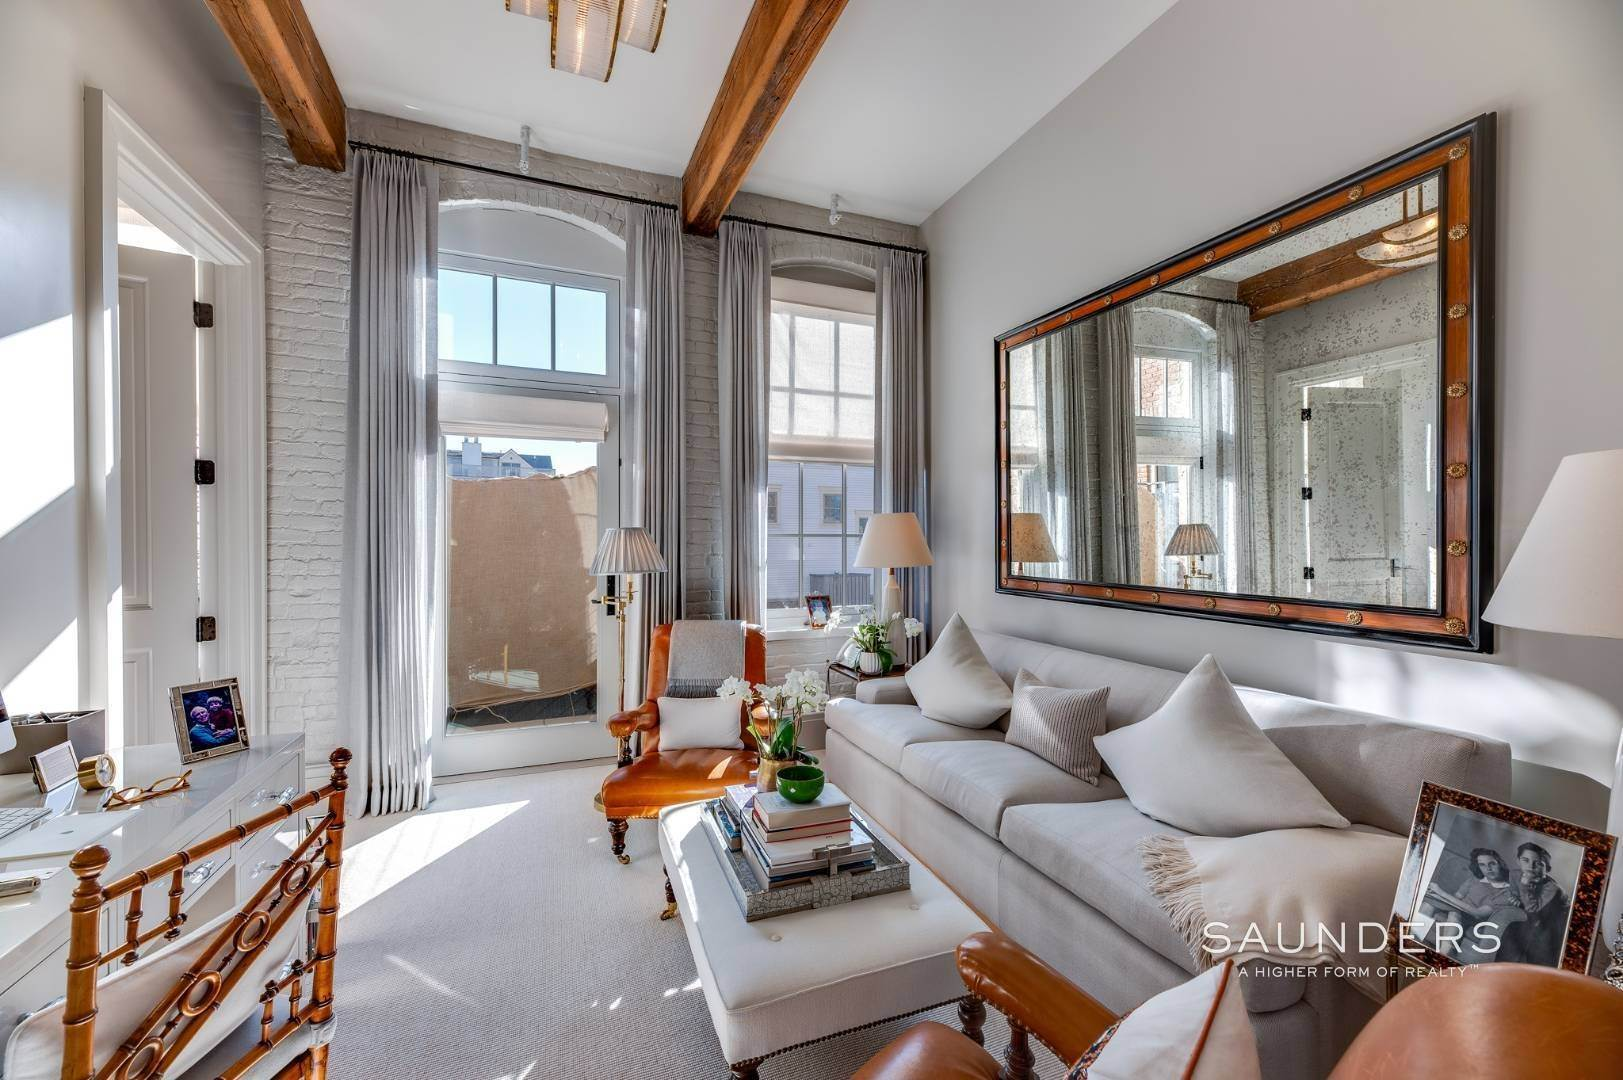 6. Condominiums for Sale at Watchcase Condo - Design By Steven Gambrel 15 Church Street, Unit C-220, Sag Harbor, Southampton Town, NY 11963